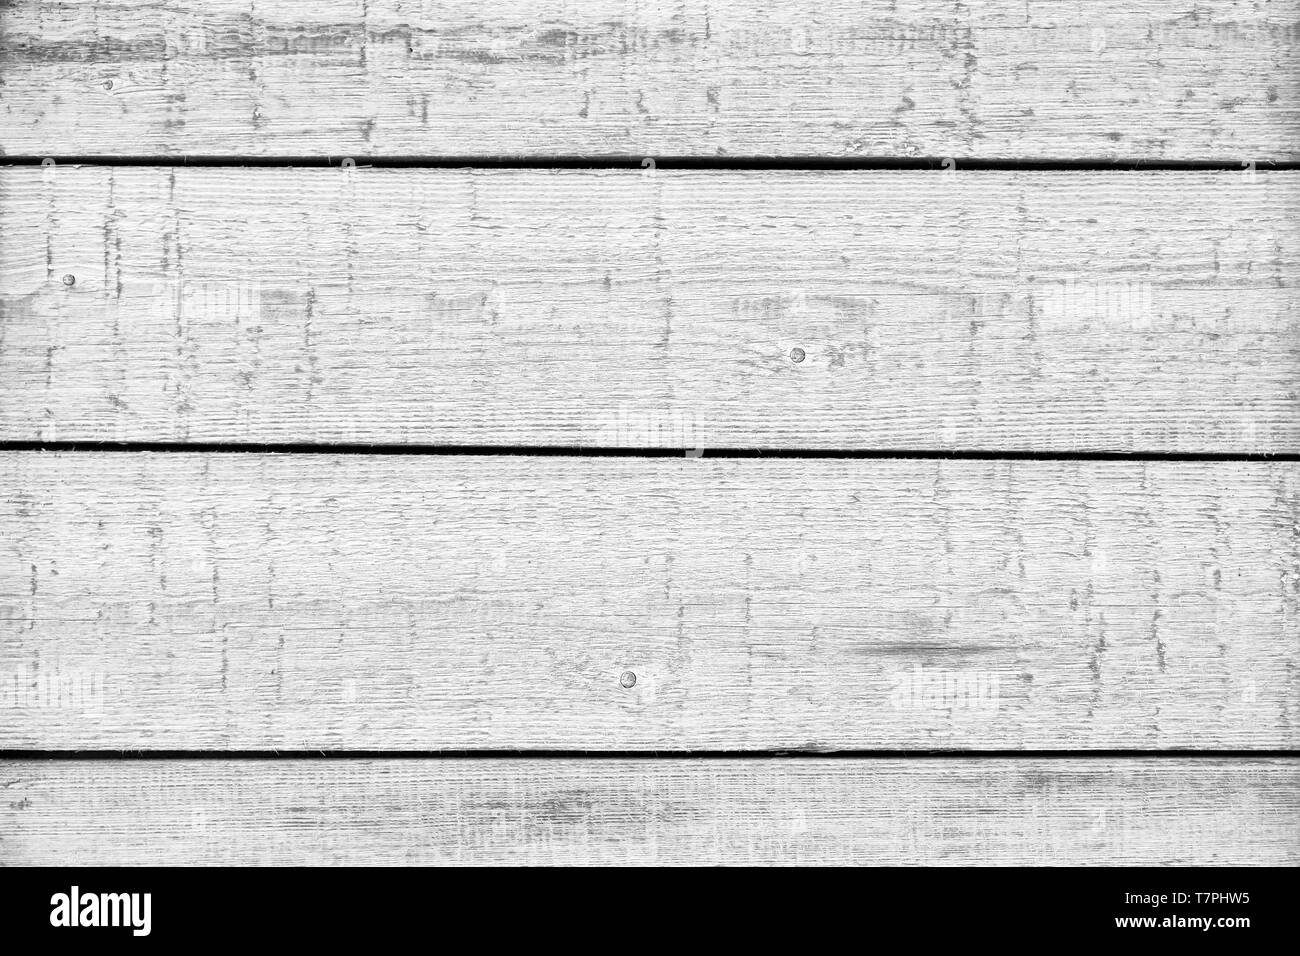 Wooden black and white background. Texture with an old, rustic, gray planks - Stock Image